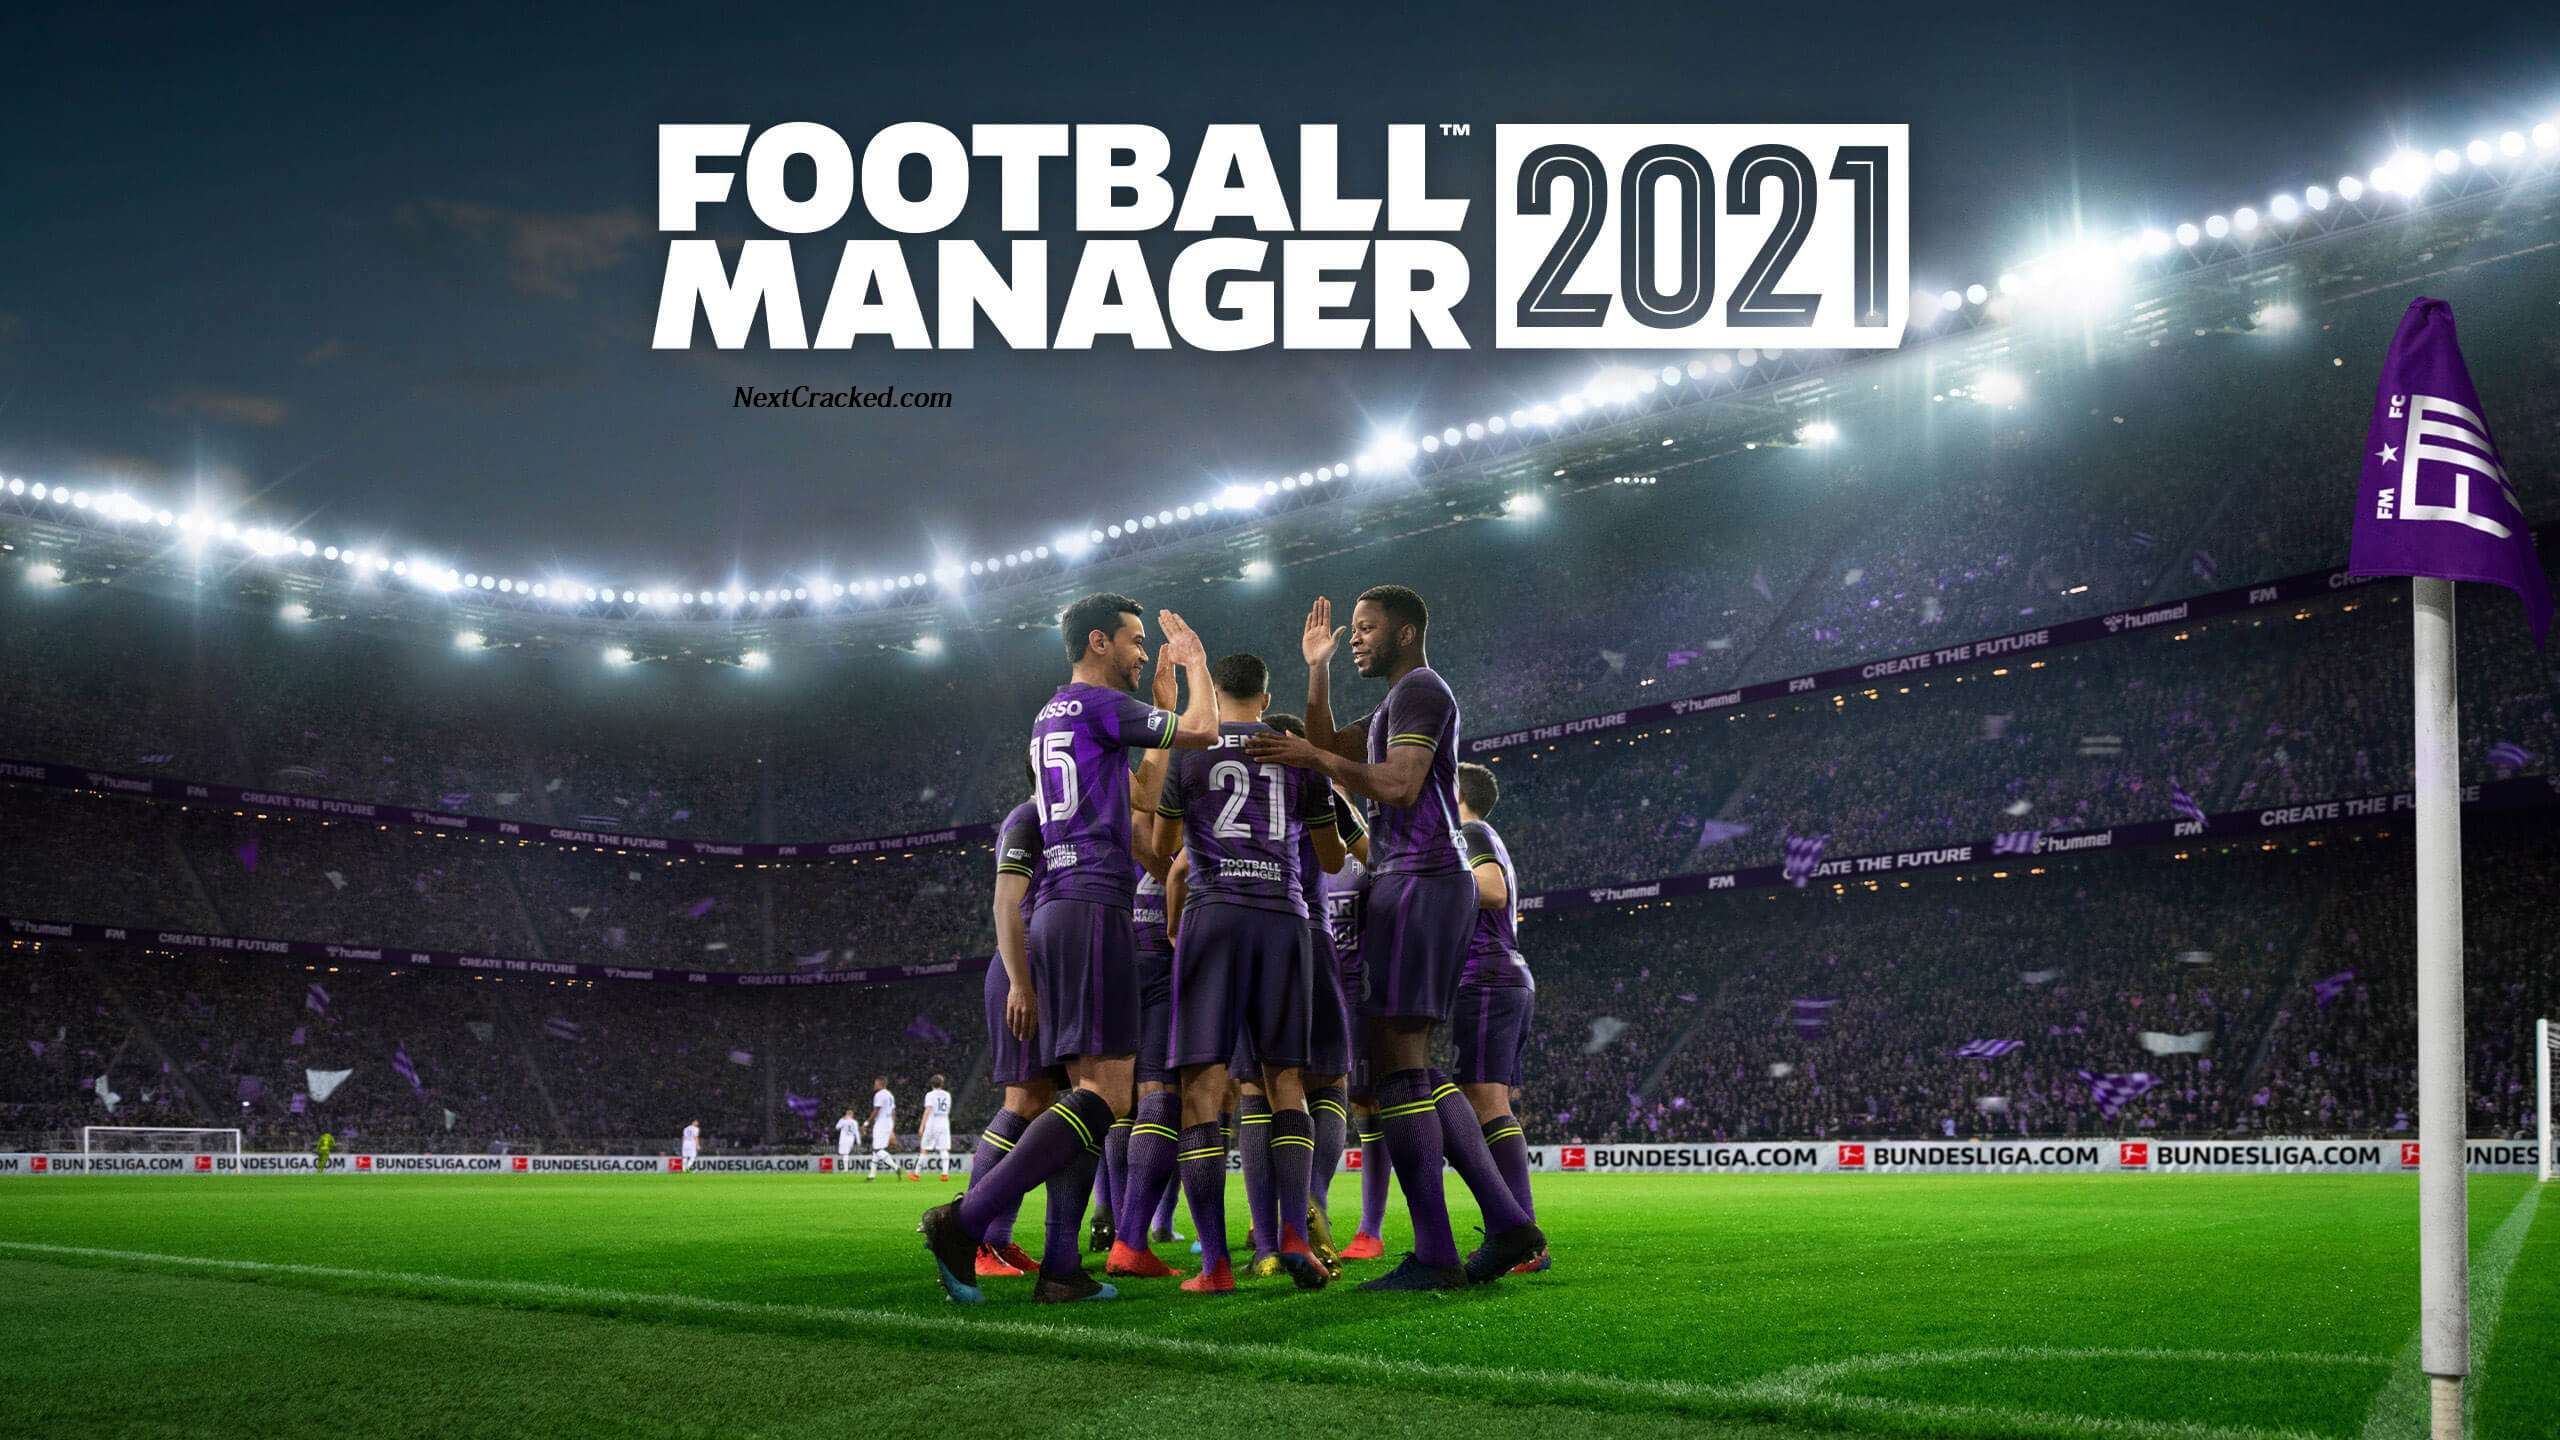 Football Manager 2021 Crack With License Key Free Download [2021]